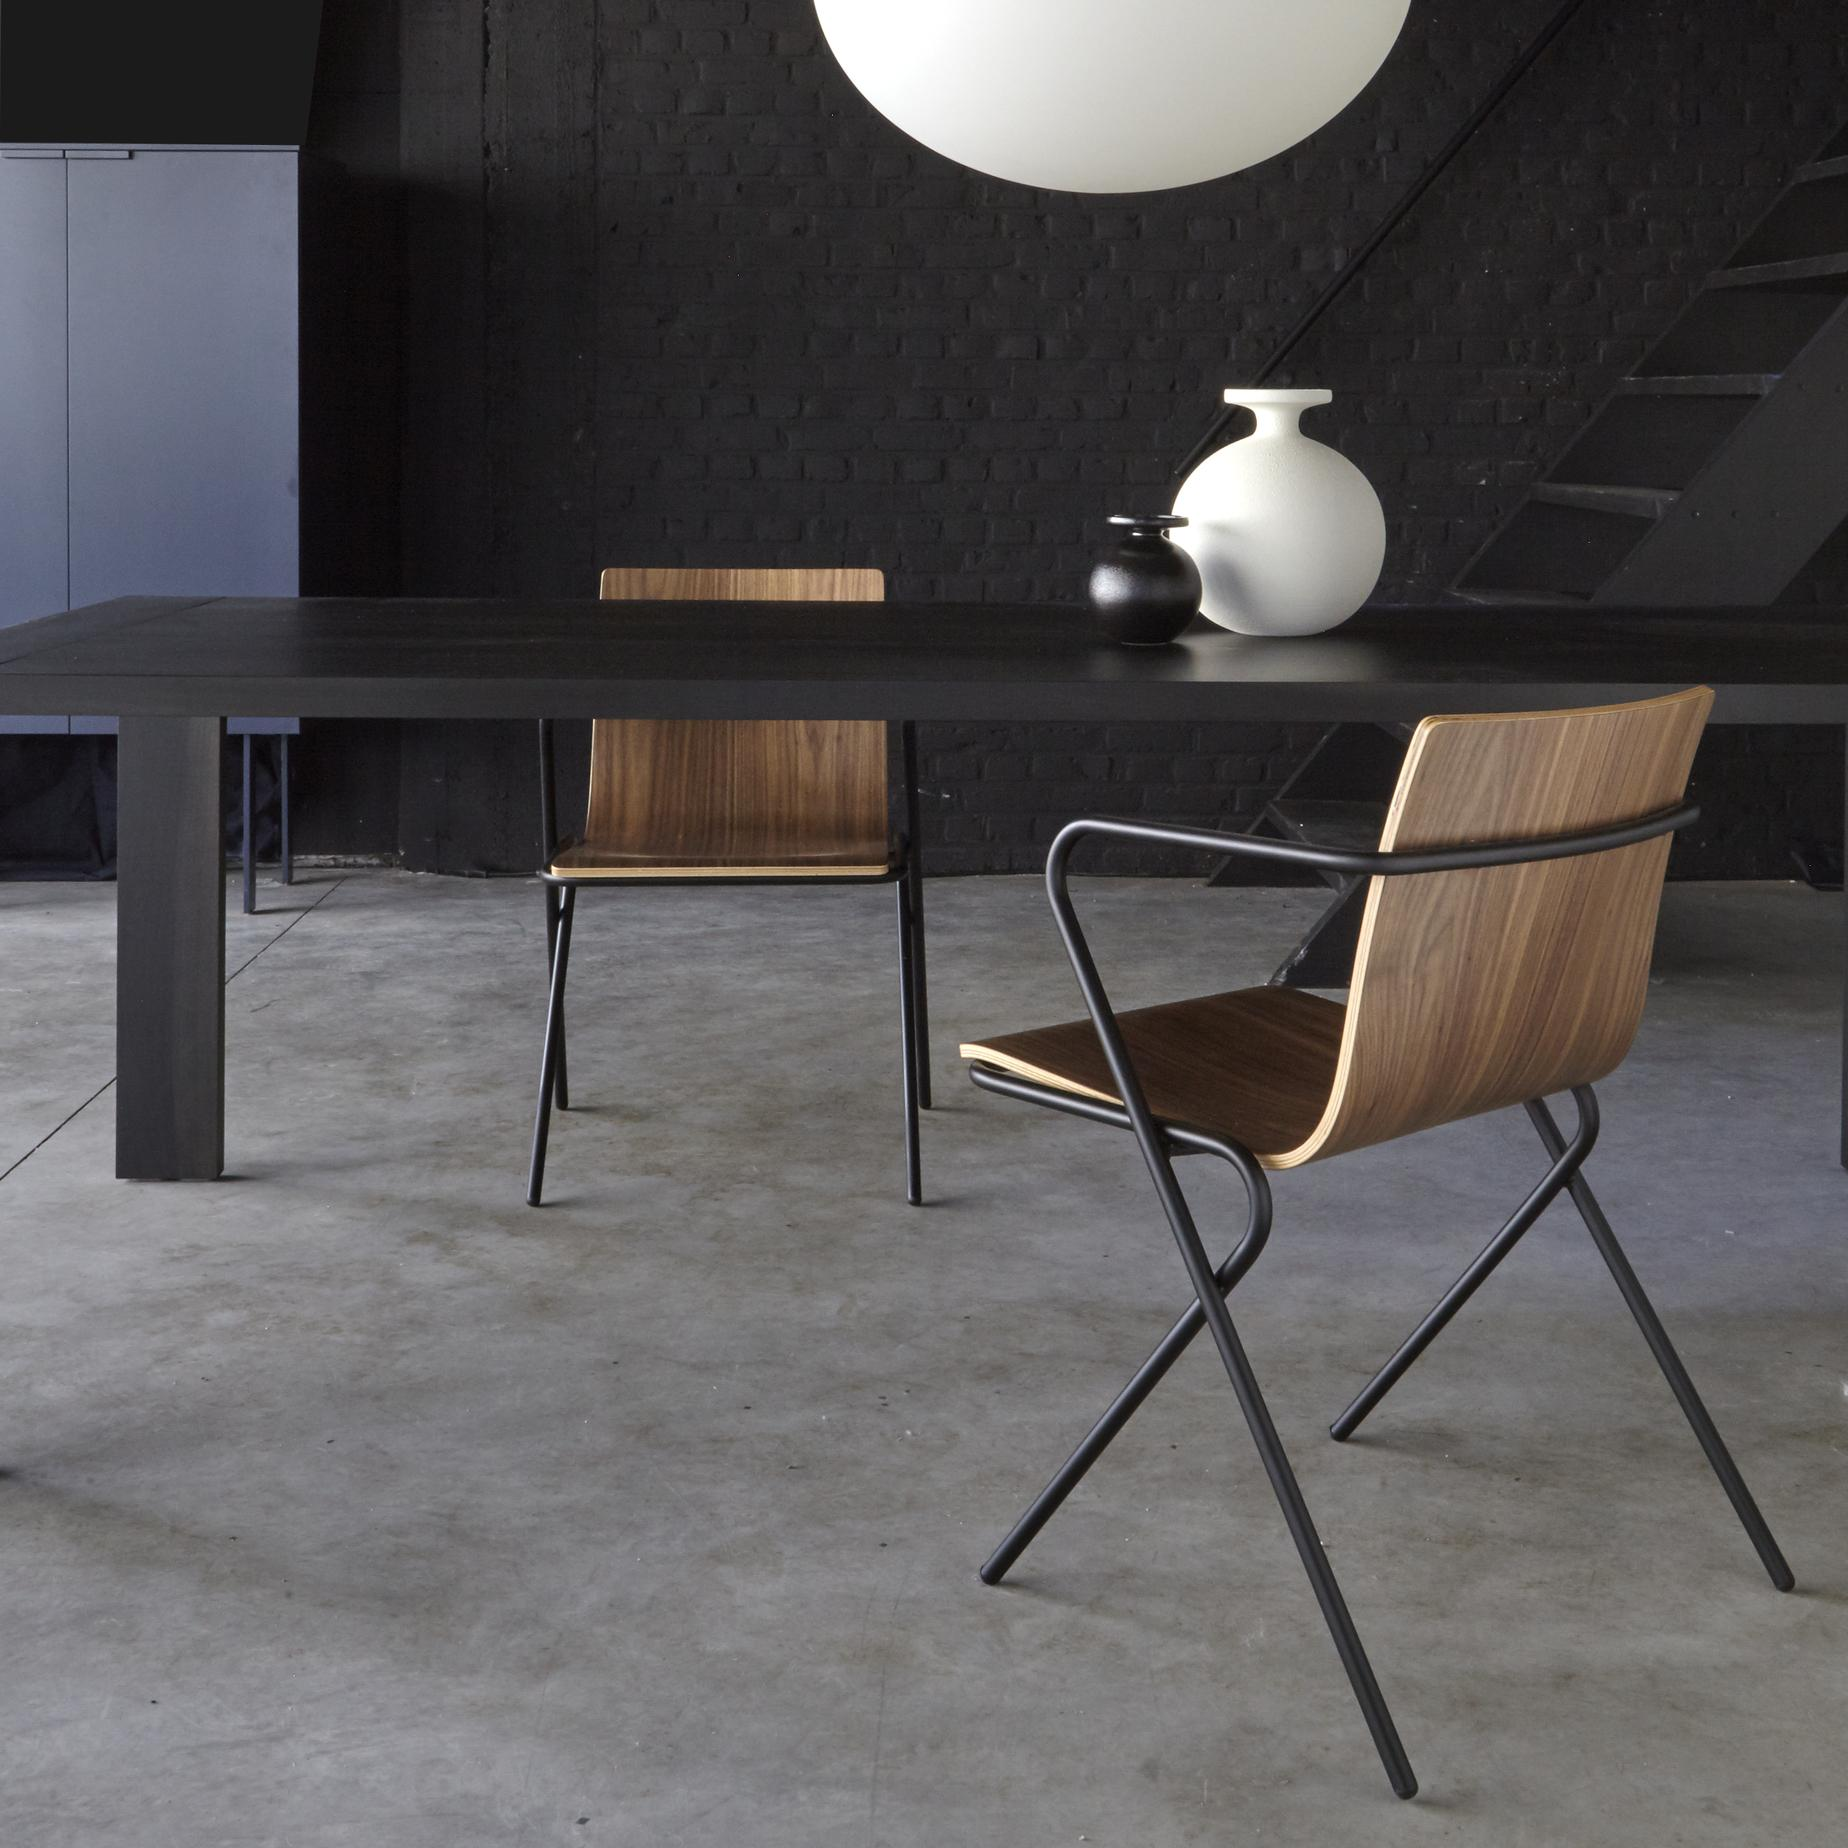 perluette chairs from designer louvry angioni ligne roset official site. Black Bedroom Furniture Sets. Home Design Ideas